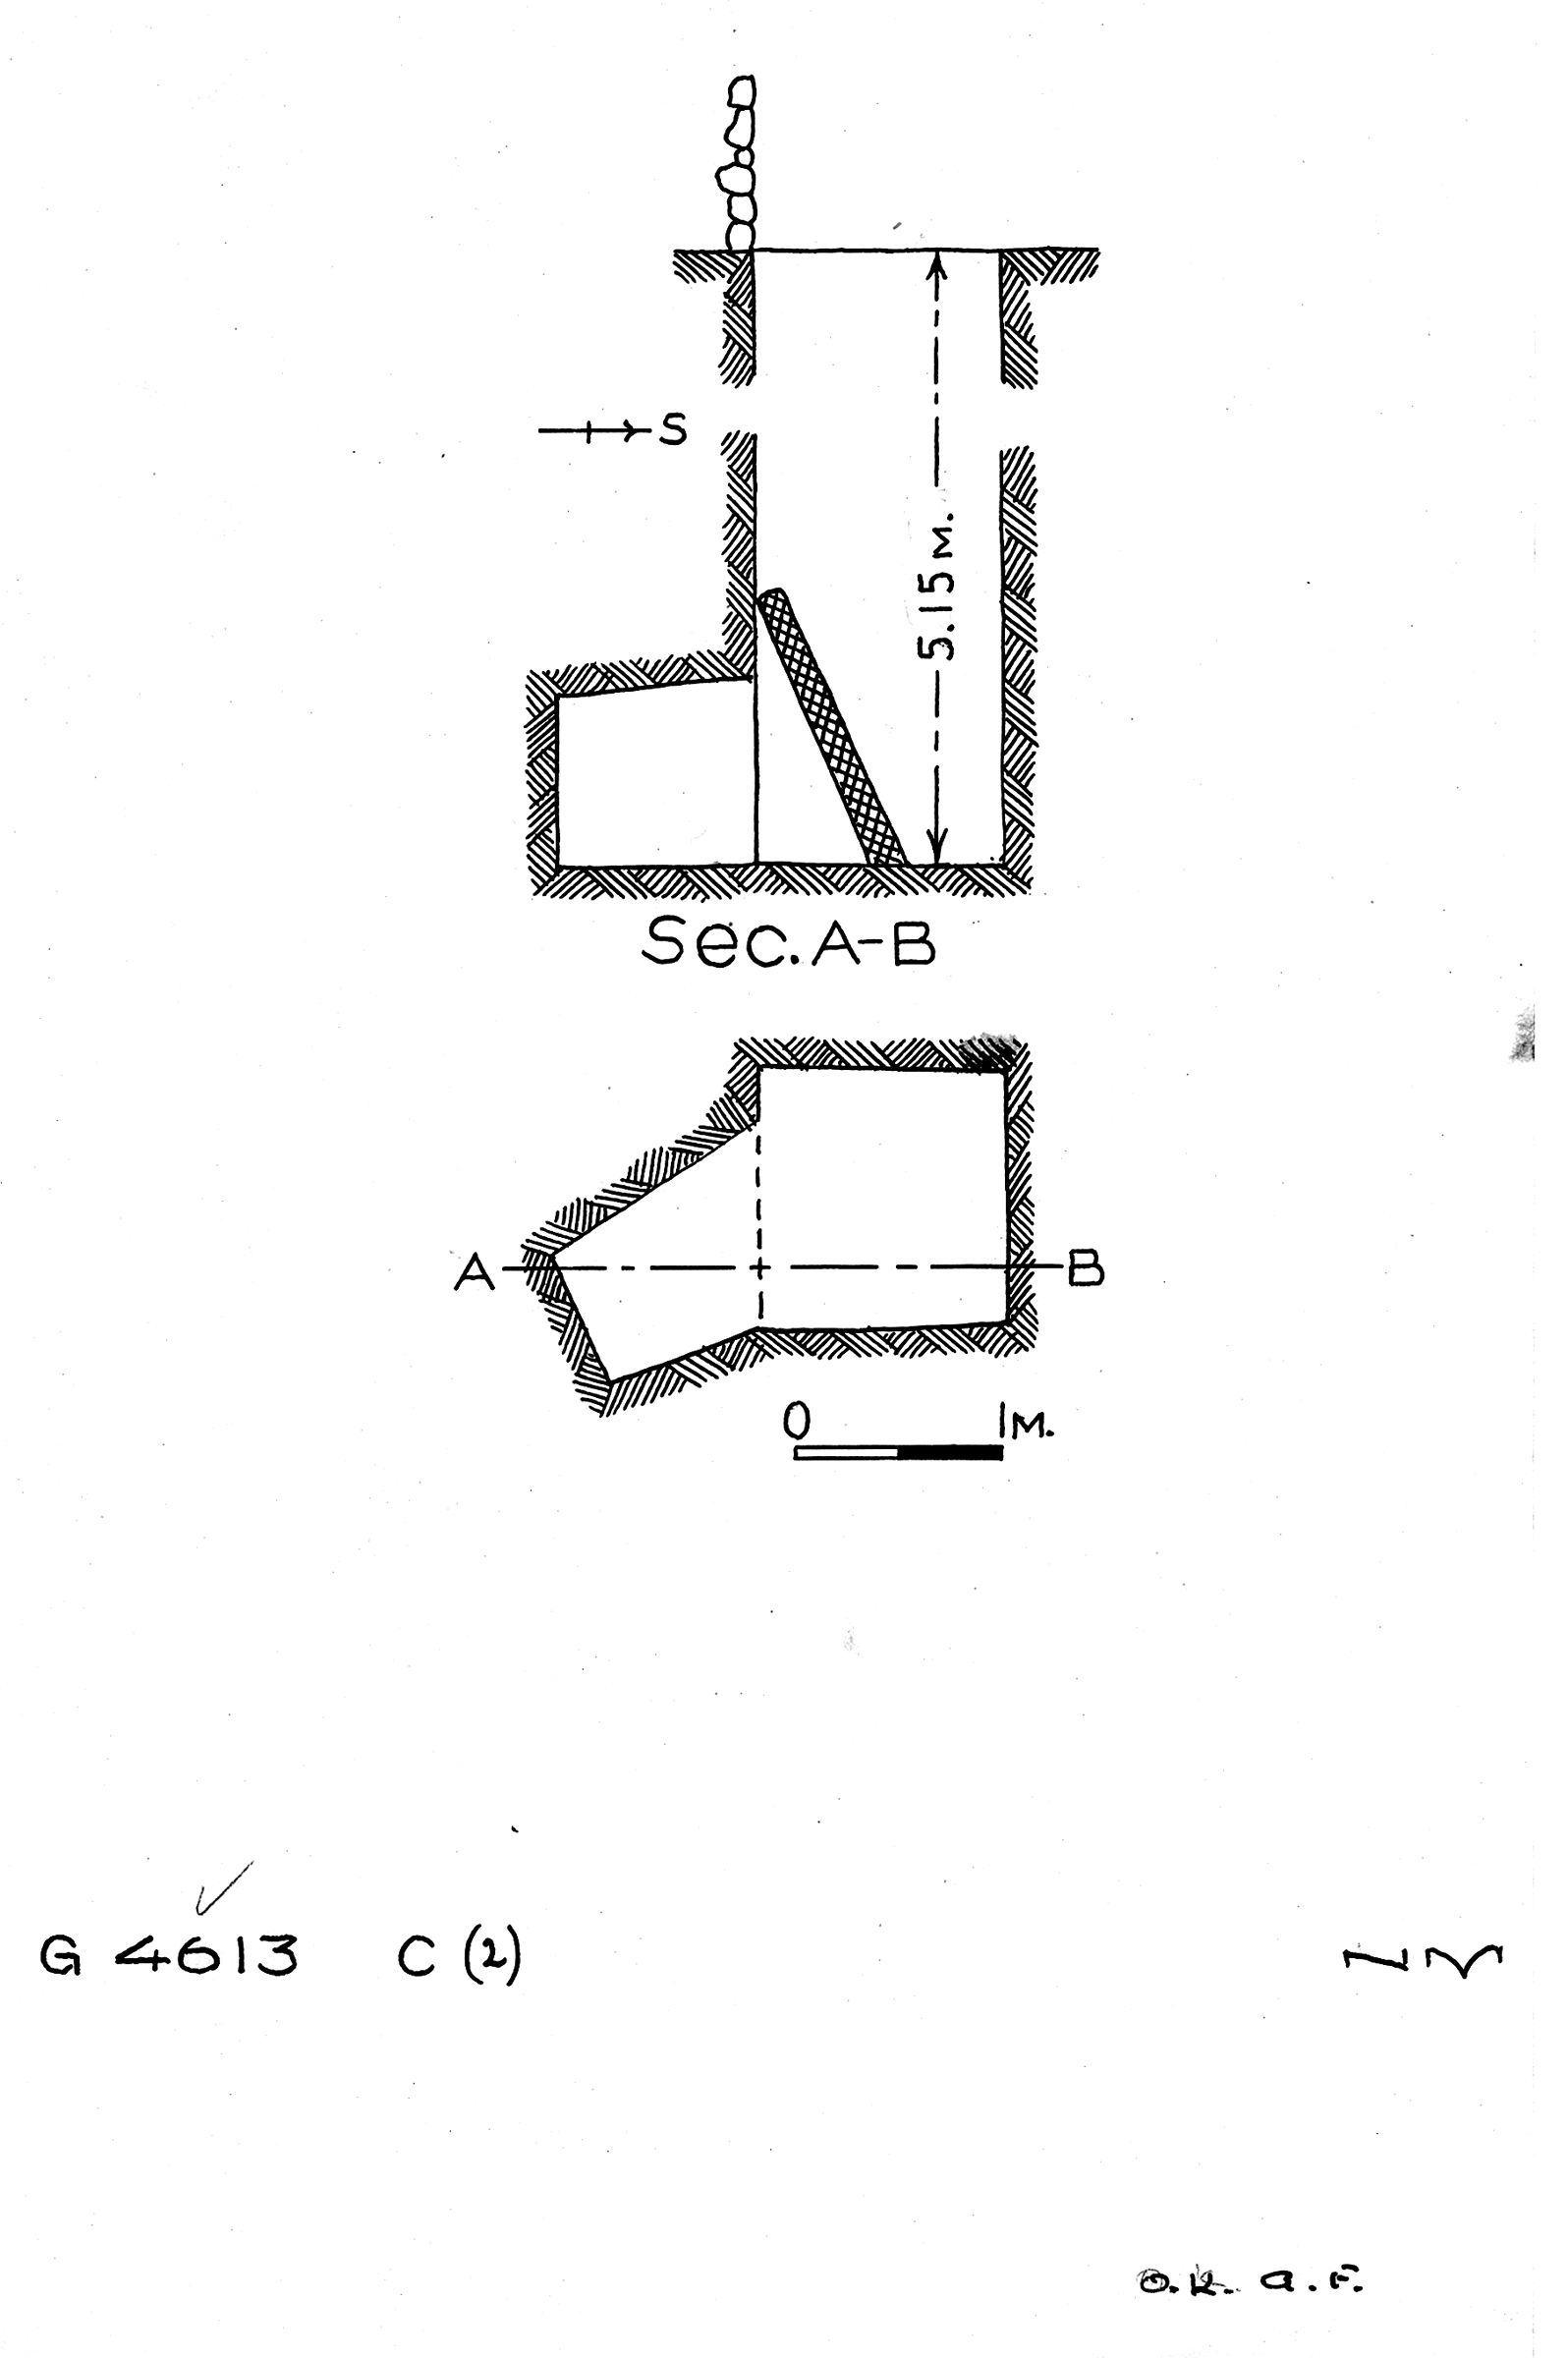 Maps and plans: G 4613, Shaft C2